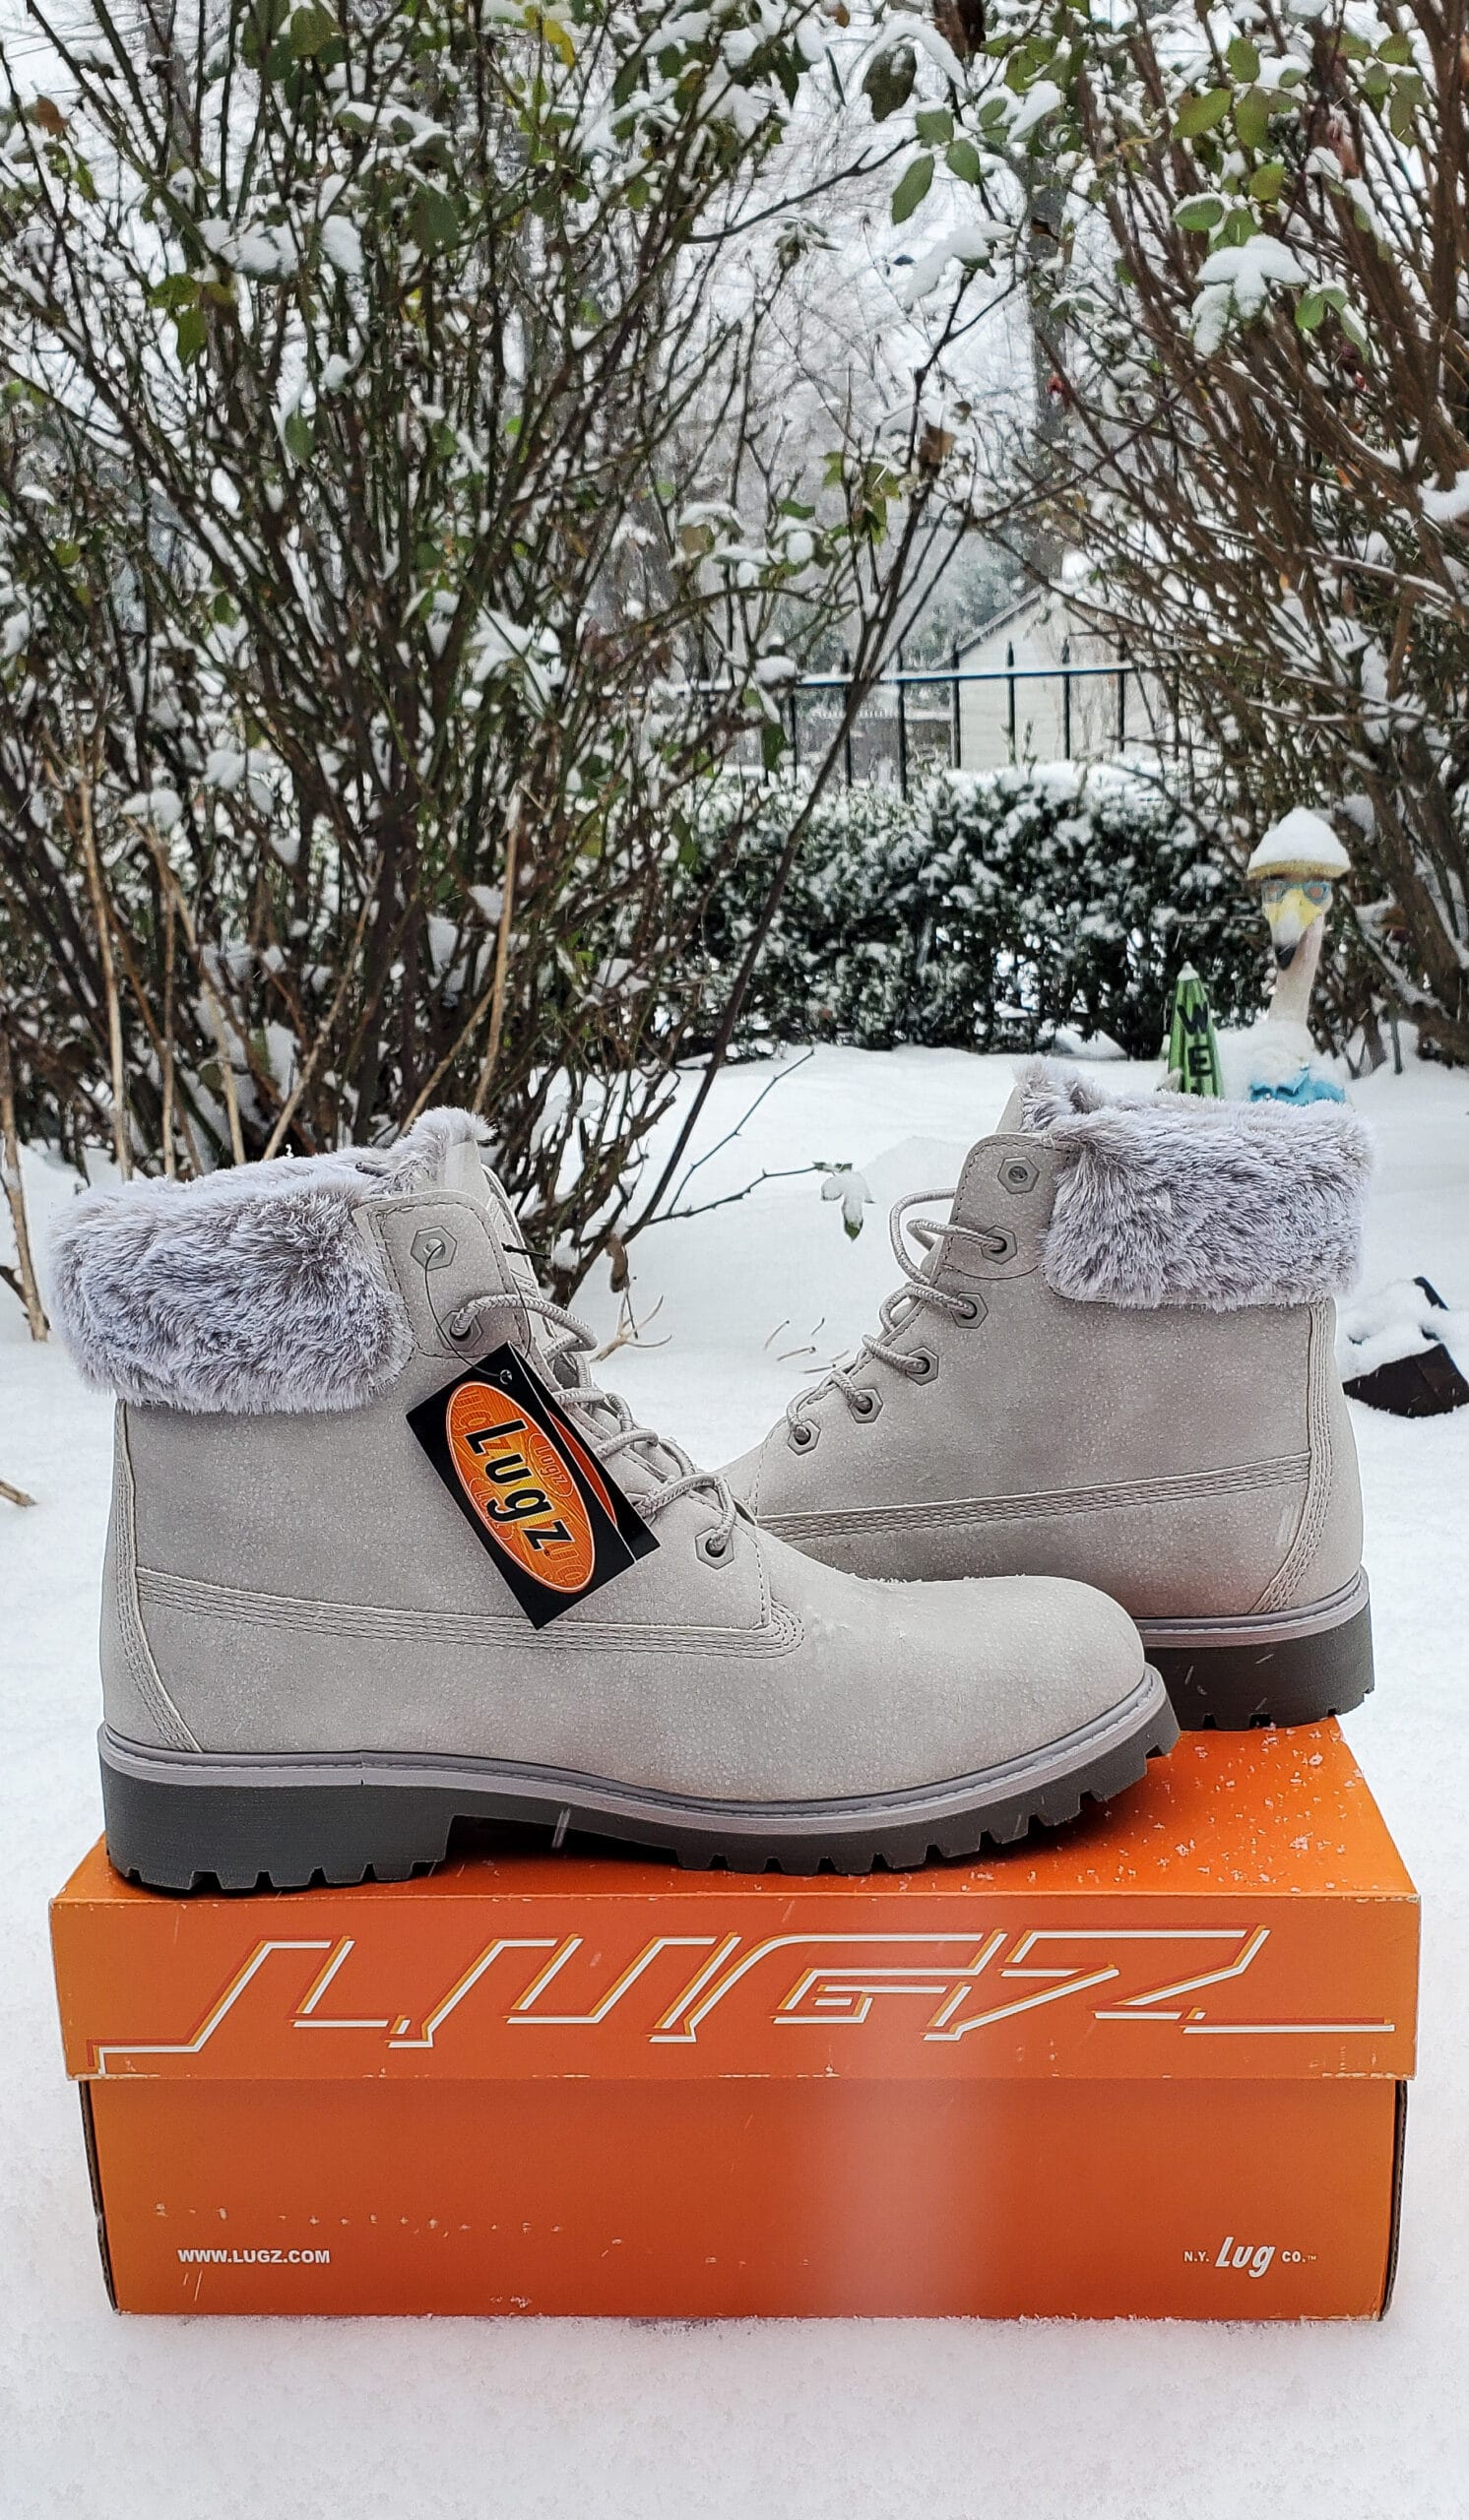 Lugz Convoy Fur Boot Review. Easy to style and fits seamlessly into my winter wardrobe. Read why I'm recommending this comfy and stylish gift in my Lugz Convoy Fur Boot Review.